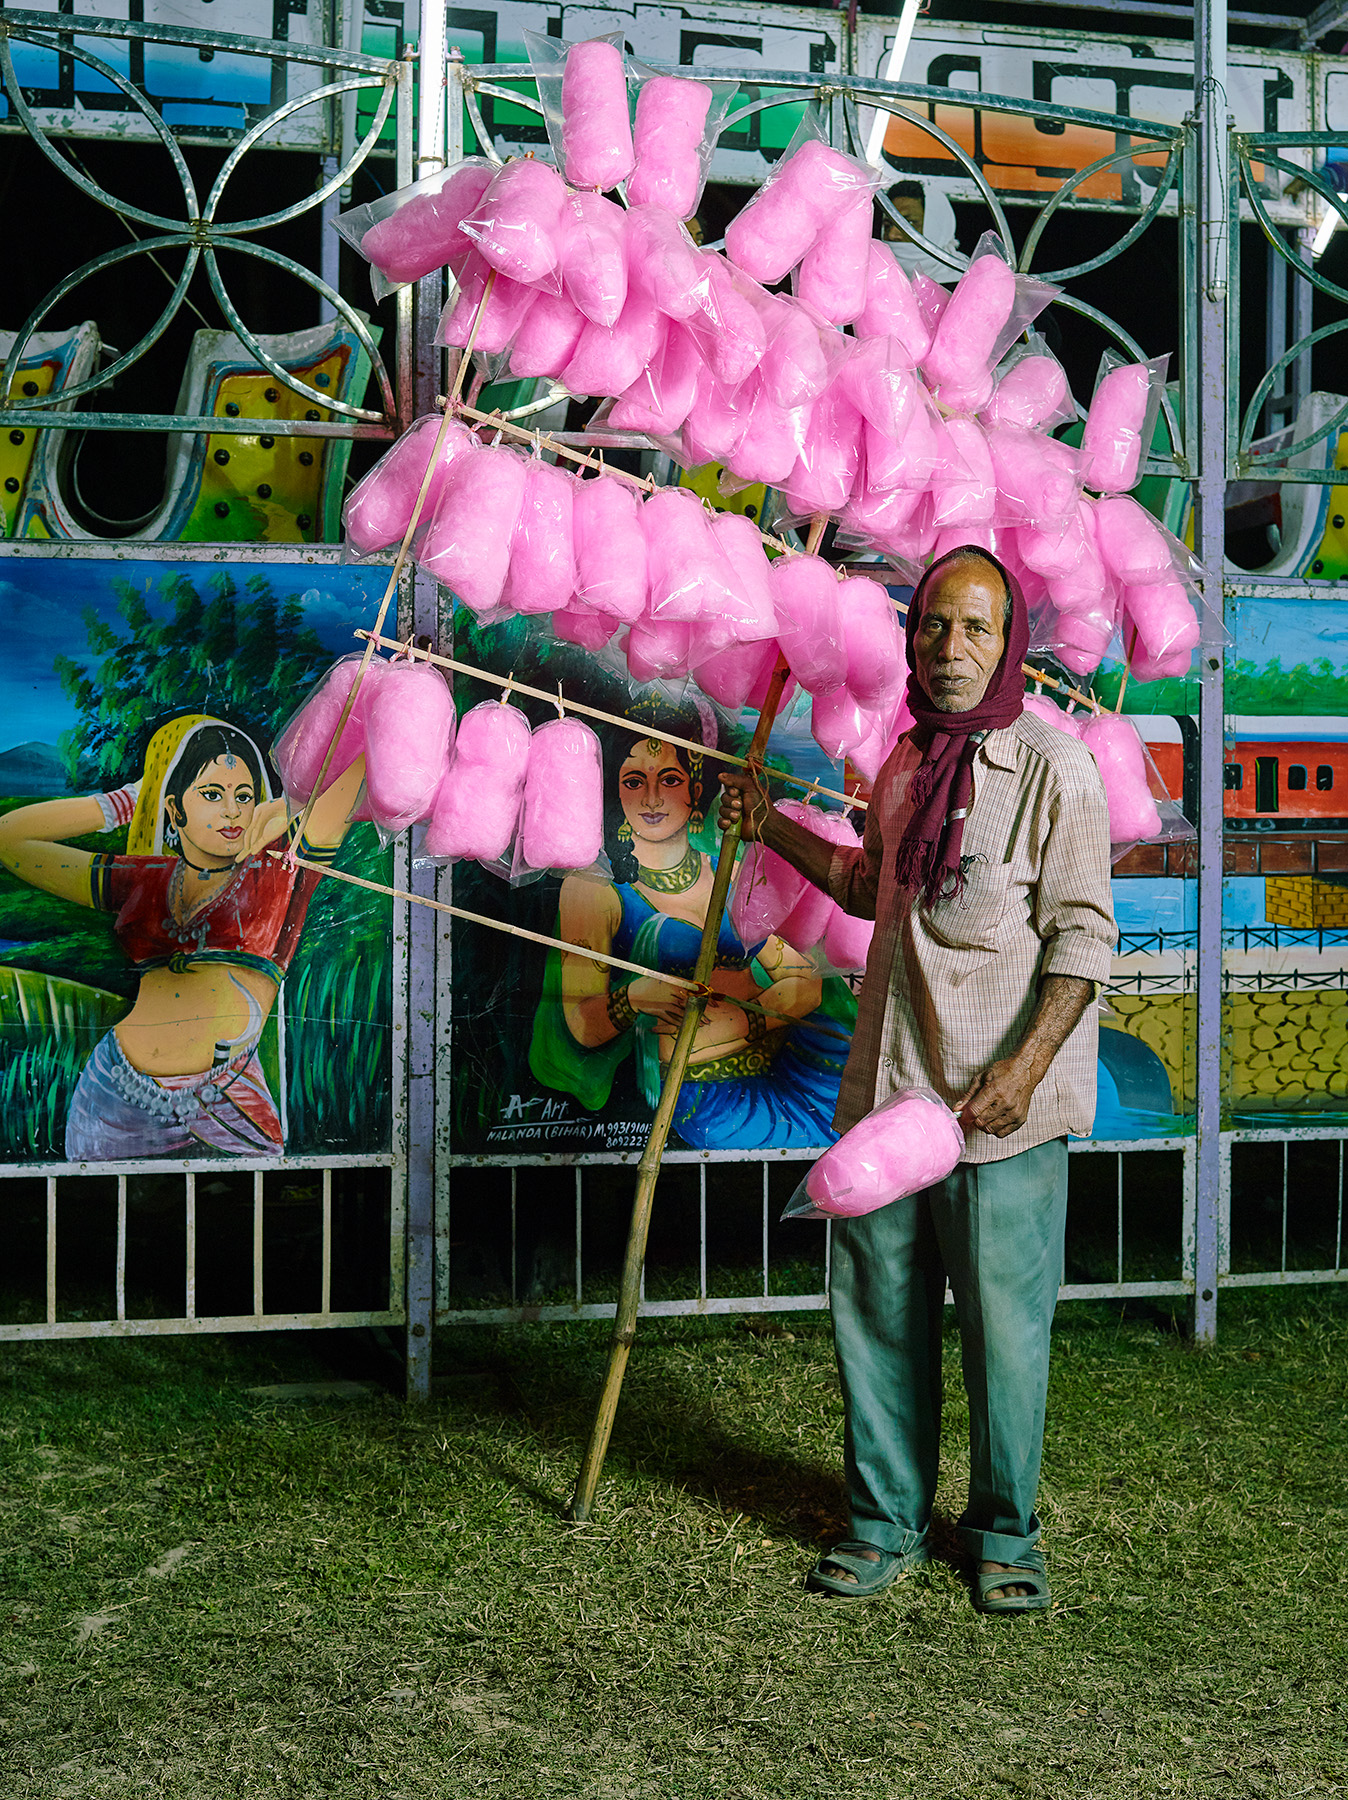 COTTON-CANDY SELLER, $16 WEEKLY, 2015